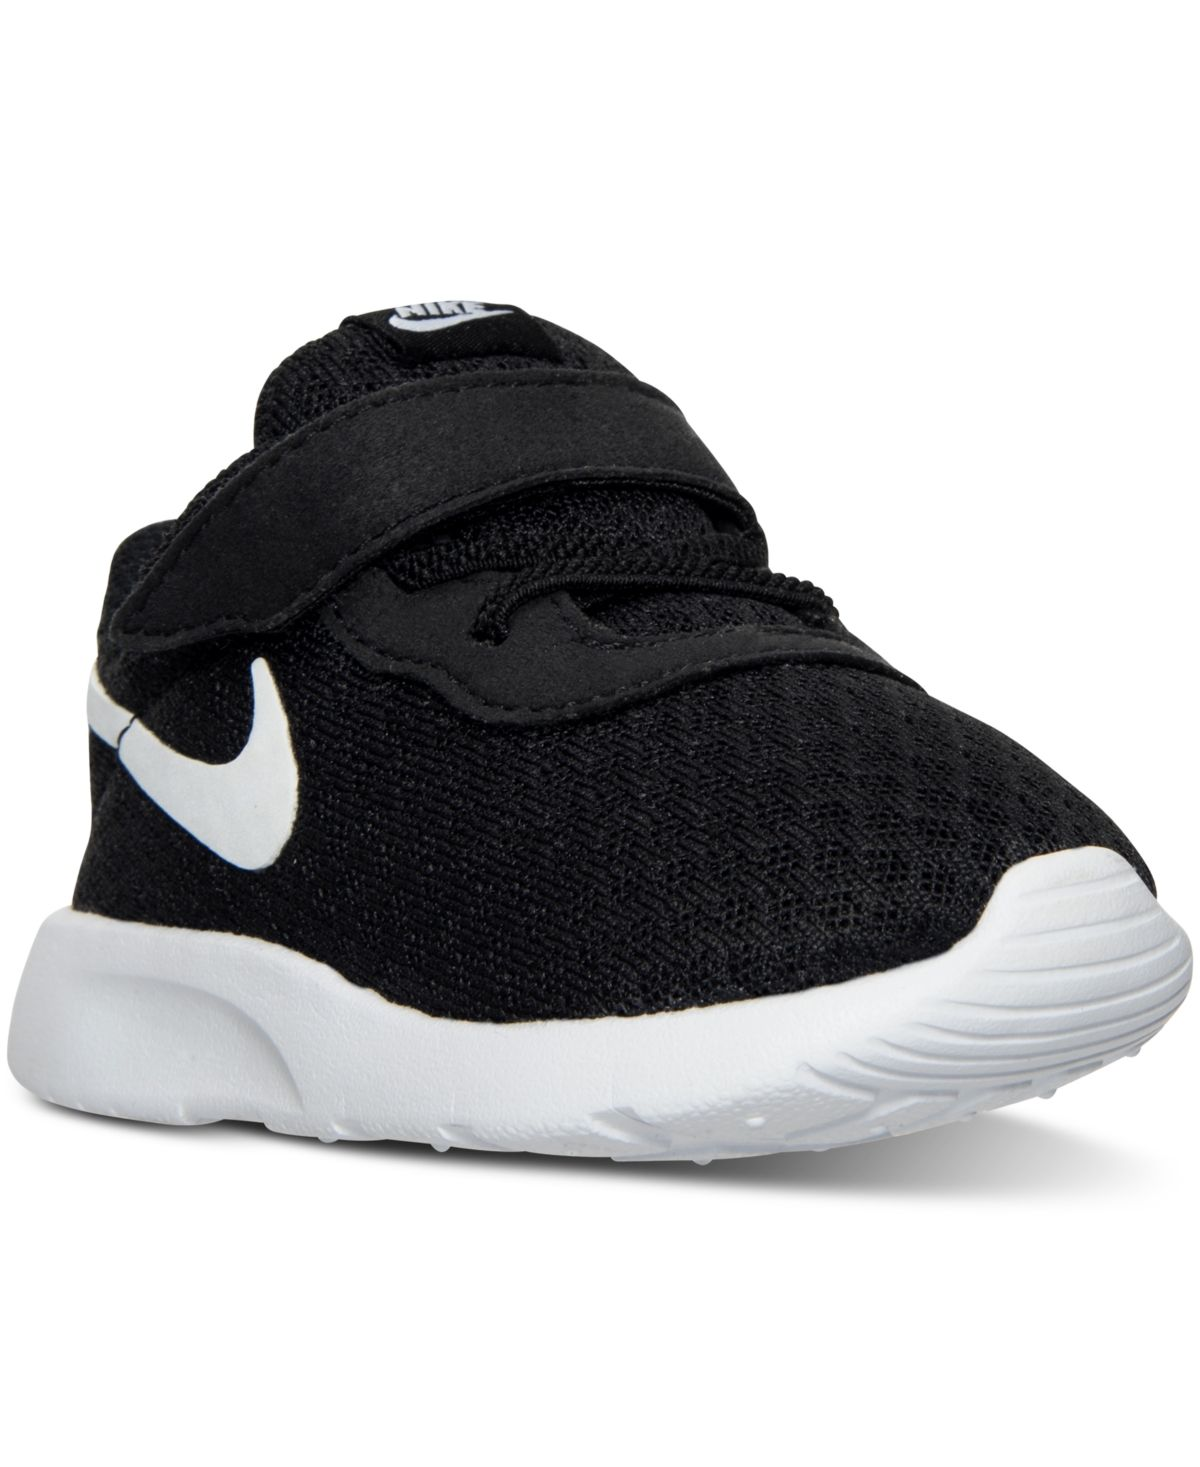 Nike Toddler Boys Tanjun Casual Sneakers From Finish Line Black White White Kid Shoes Baby Nike Shoes Casual Sneakers